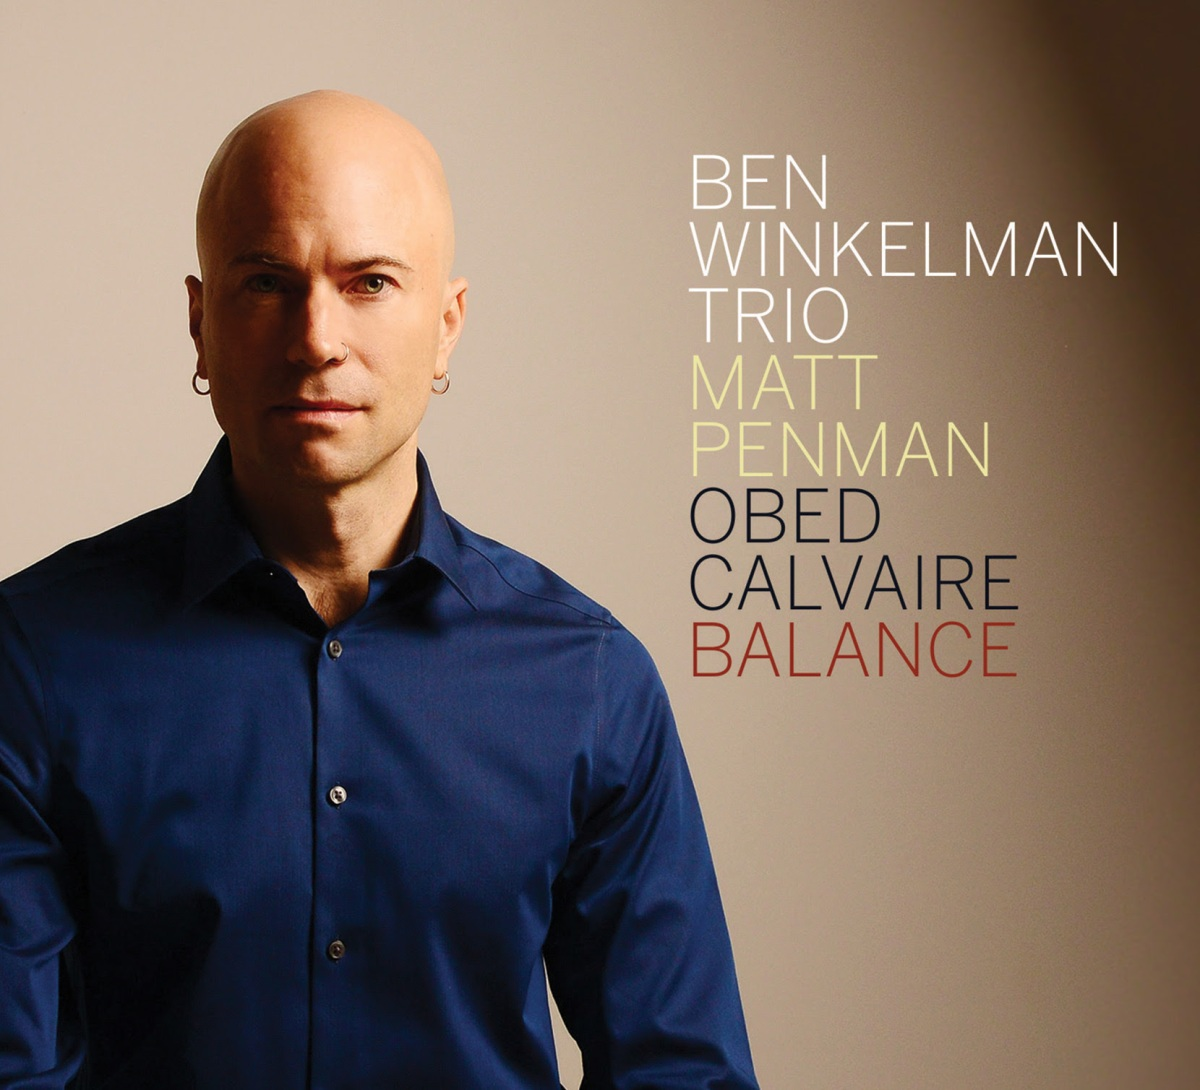 Rick Keene Music Scene - Ben Winkelman 'Balances' Latin Rhythms to Jazz On Latest Release